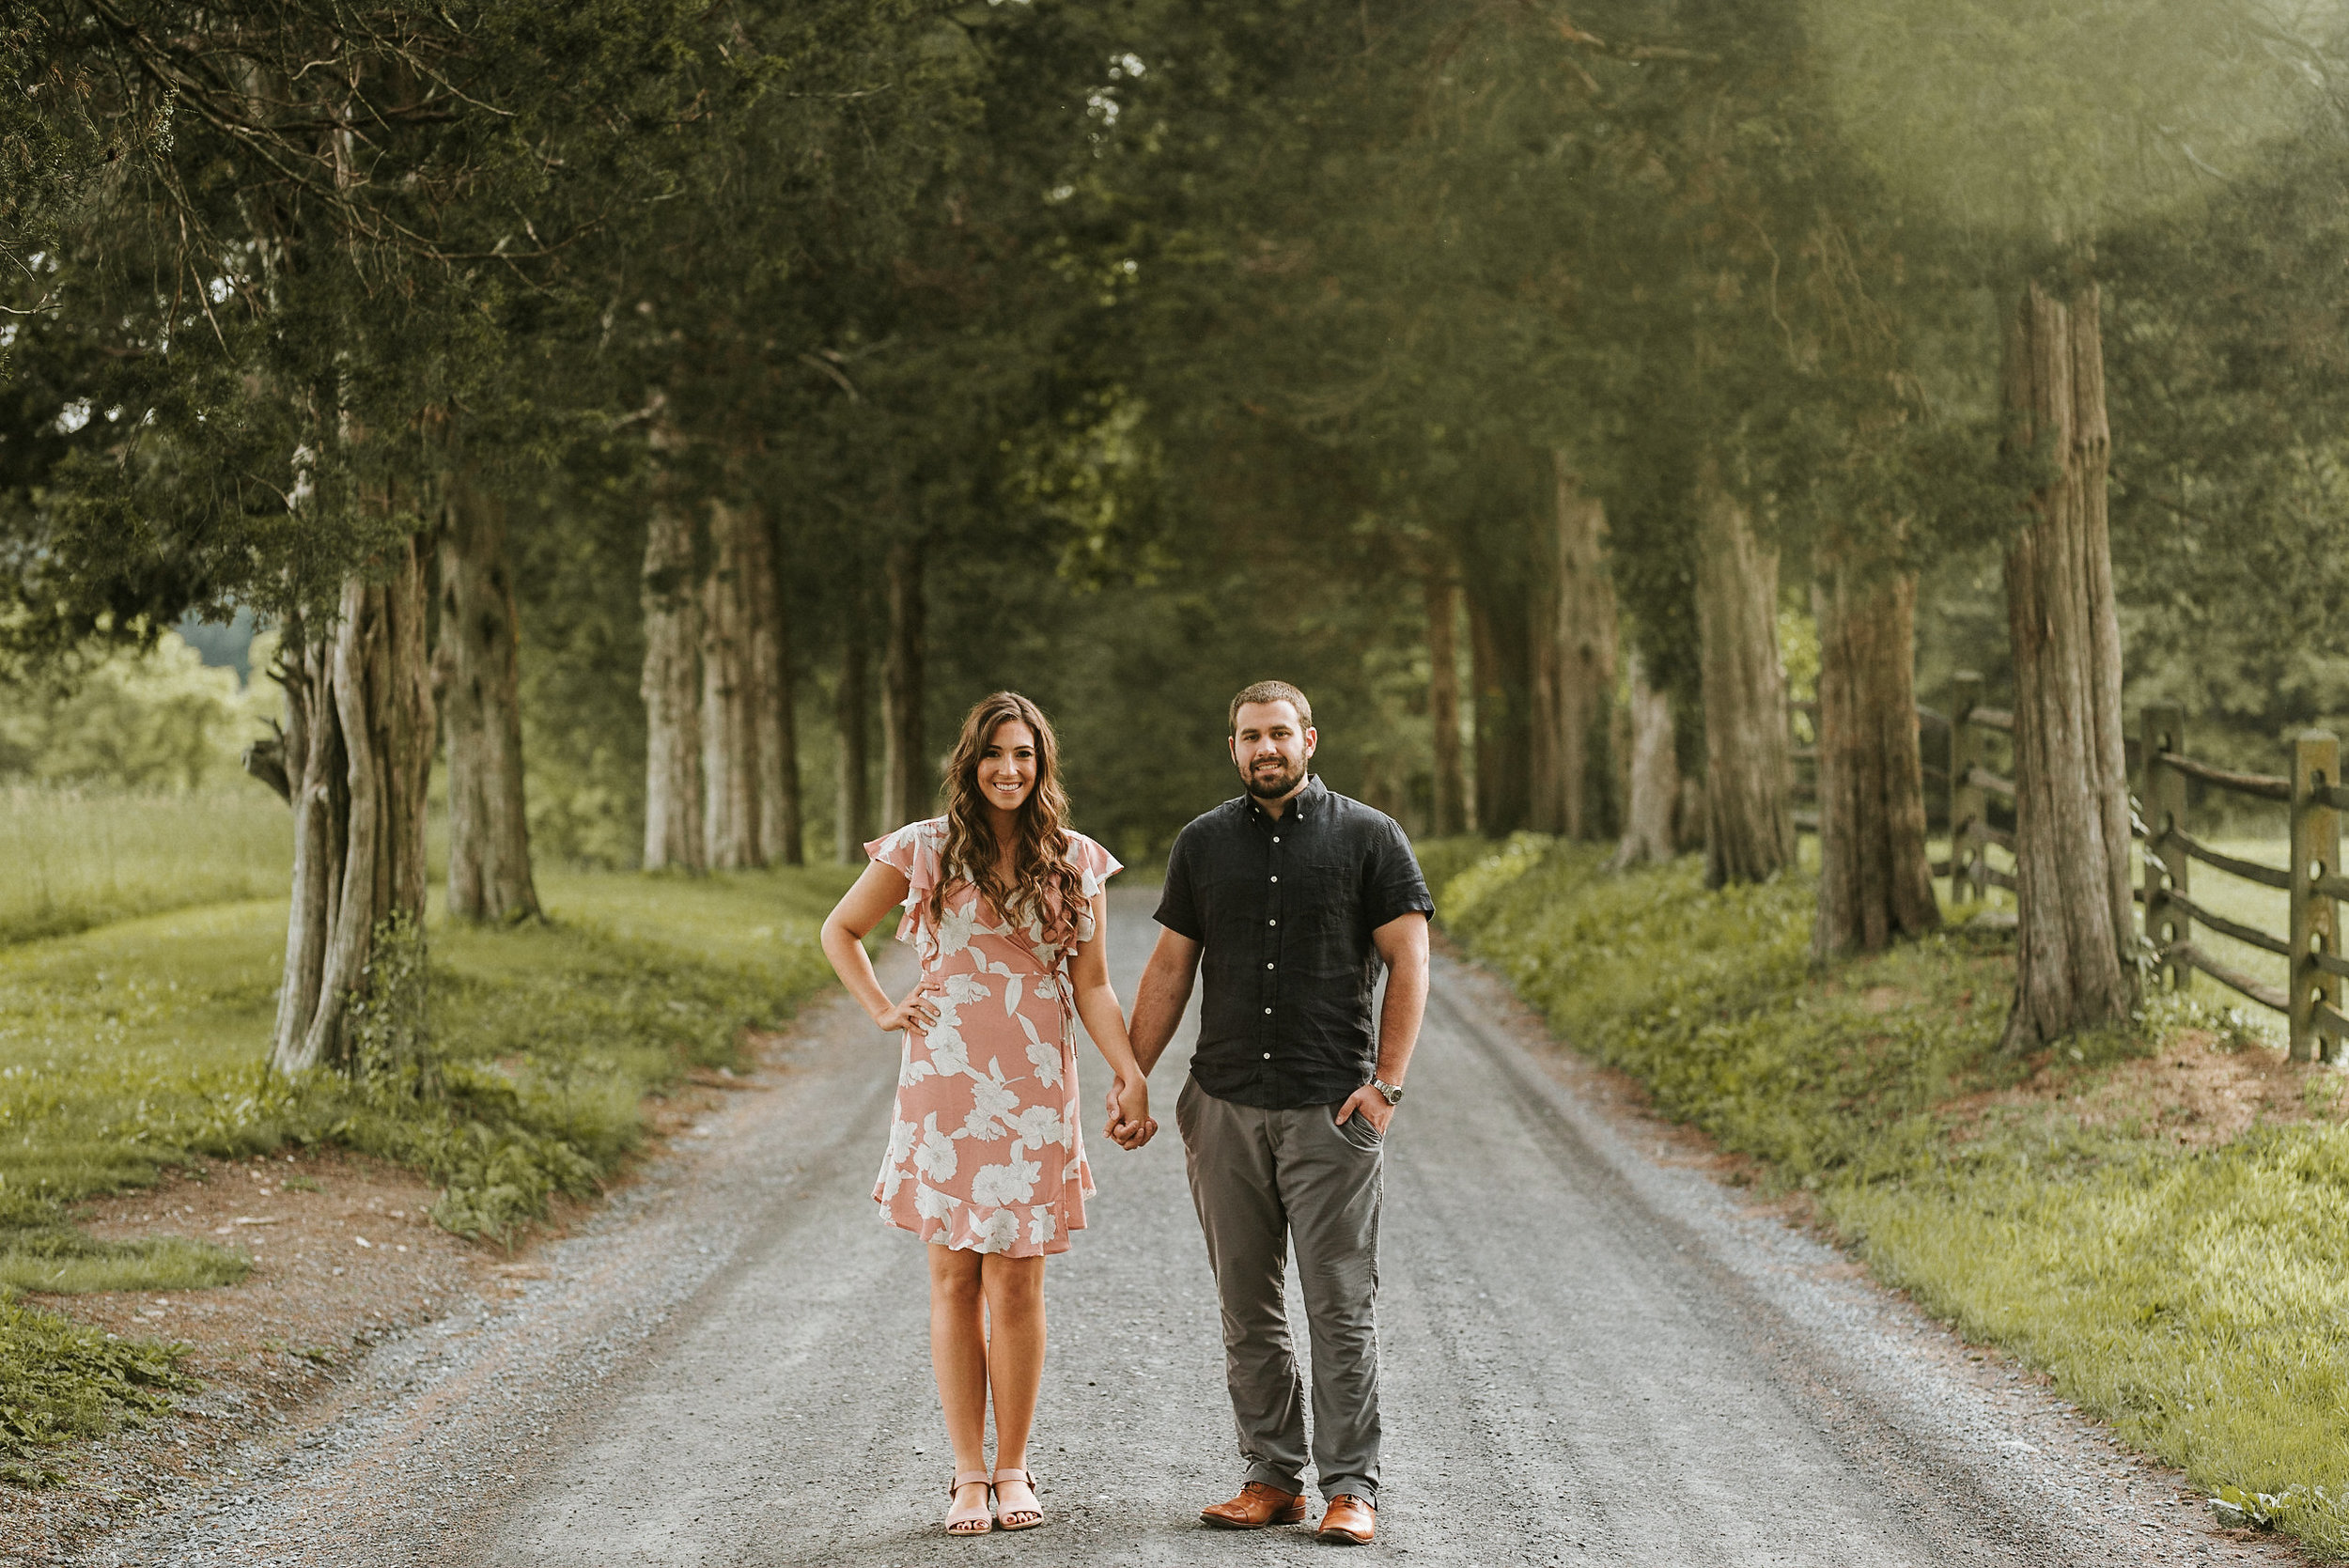 Man and woman standing on gravel road